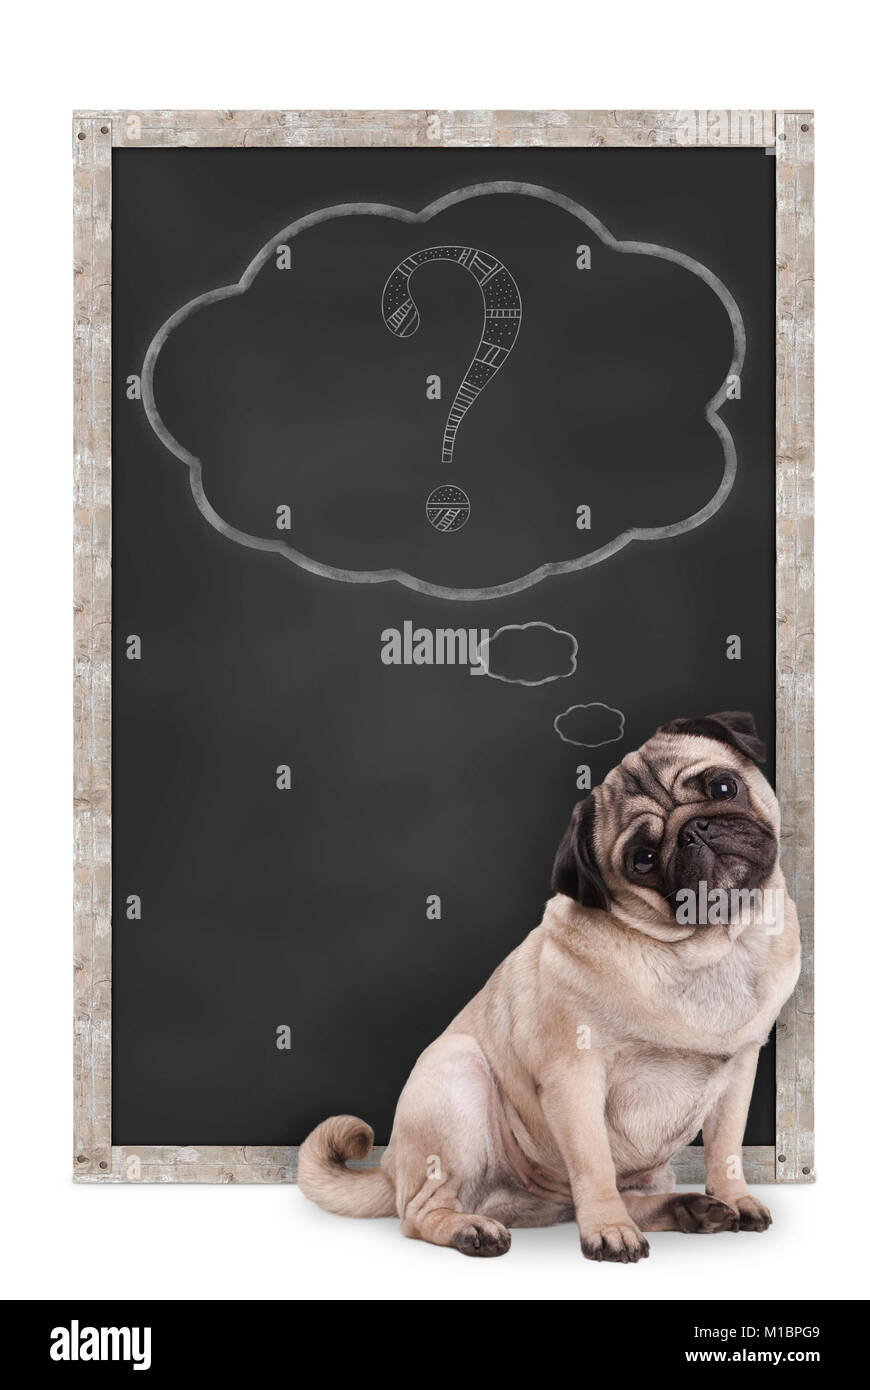 sweet smart pug puppy dog sitting in front of  blackboard with chalk question mark in thought bubble, isolated on - Stock Image